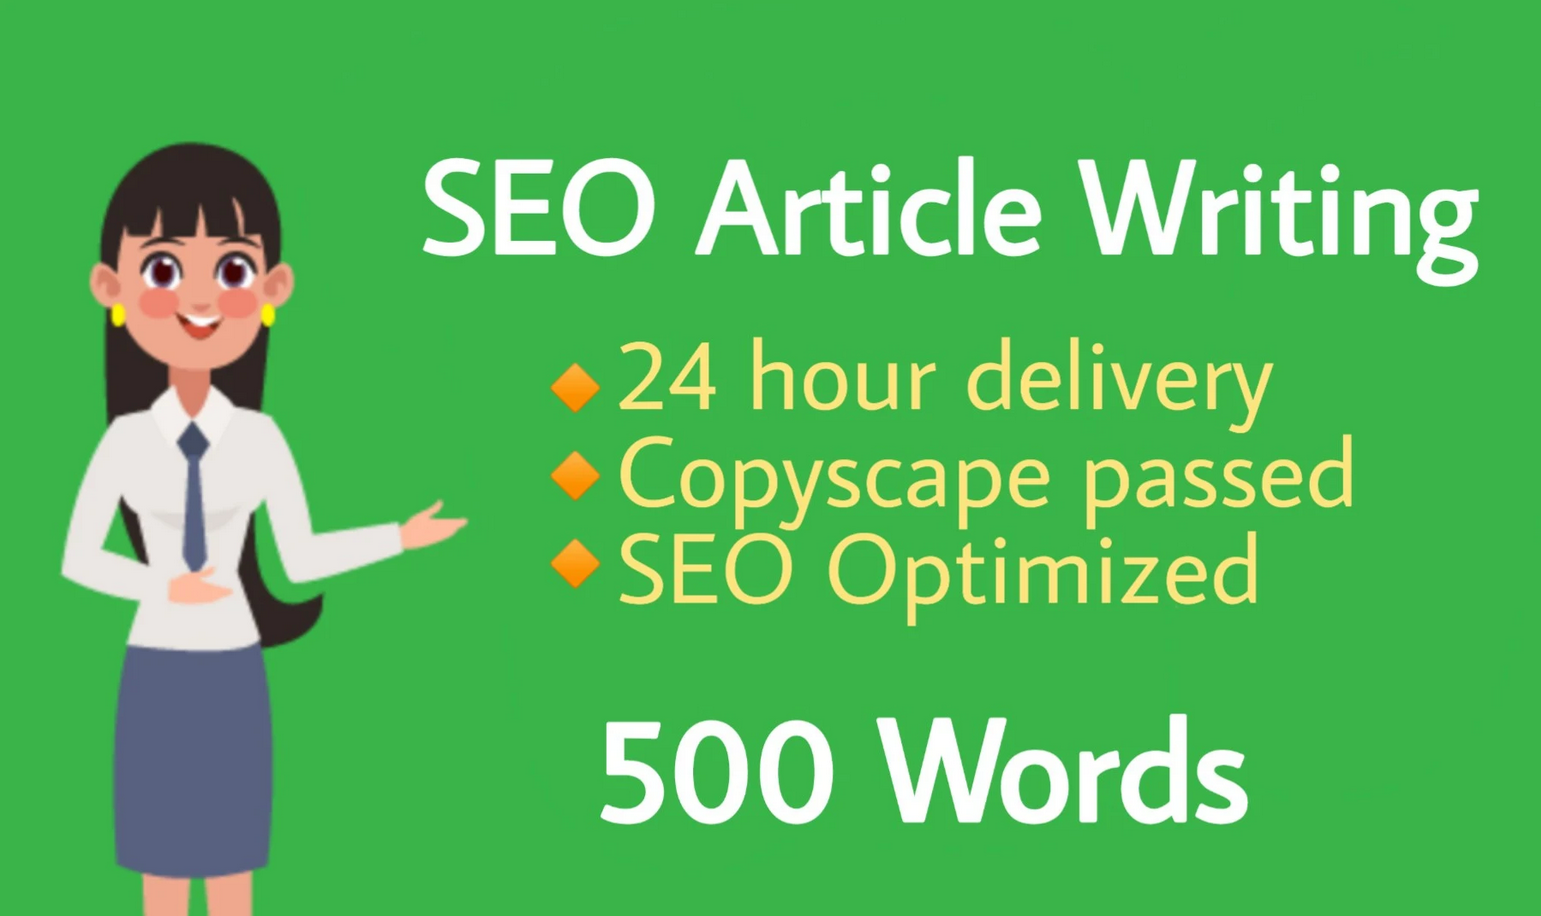 Top Quality SEO article writing of 500 words in 24 hours